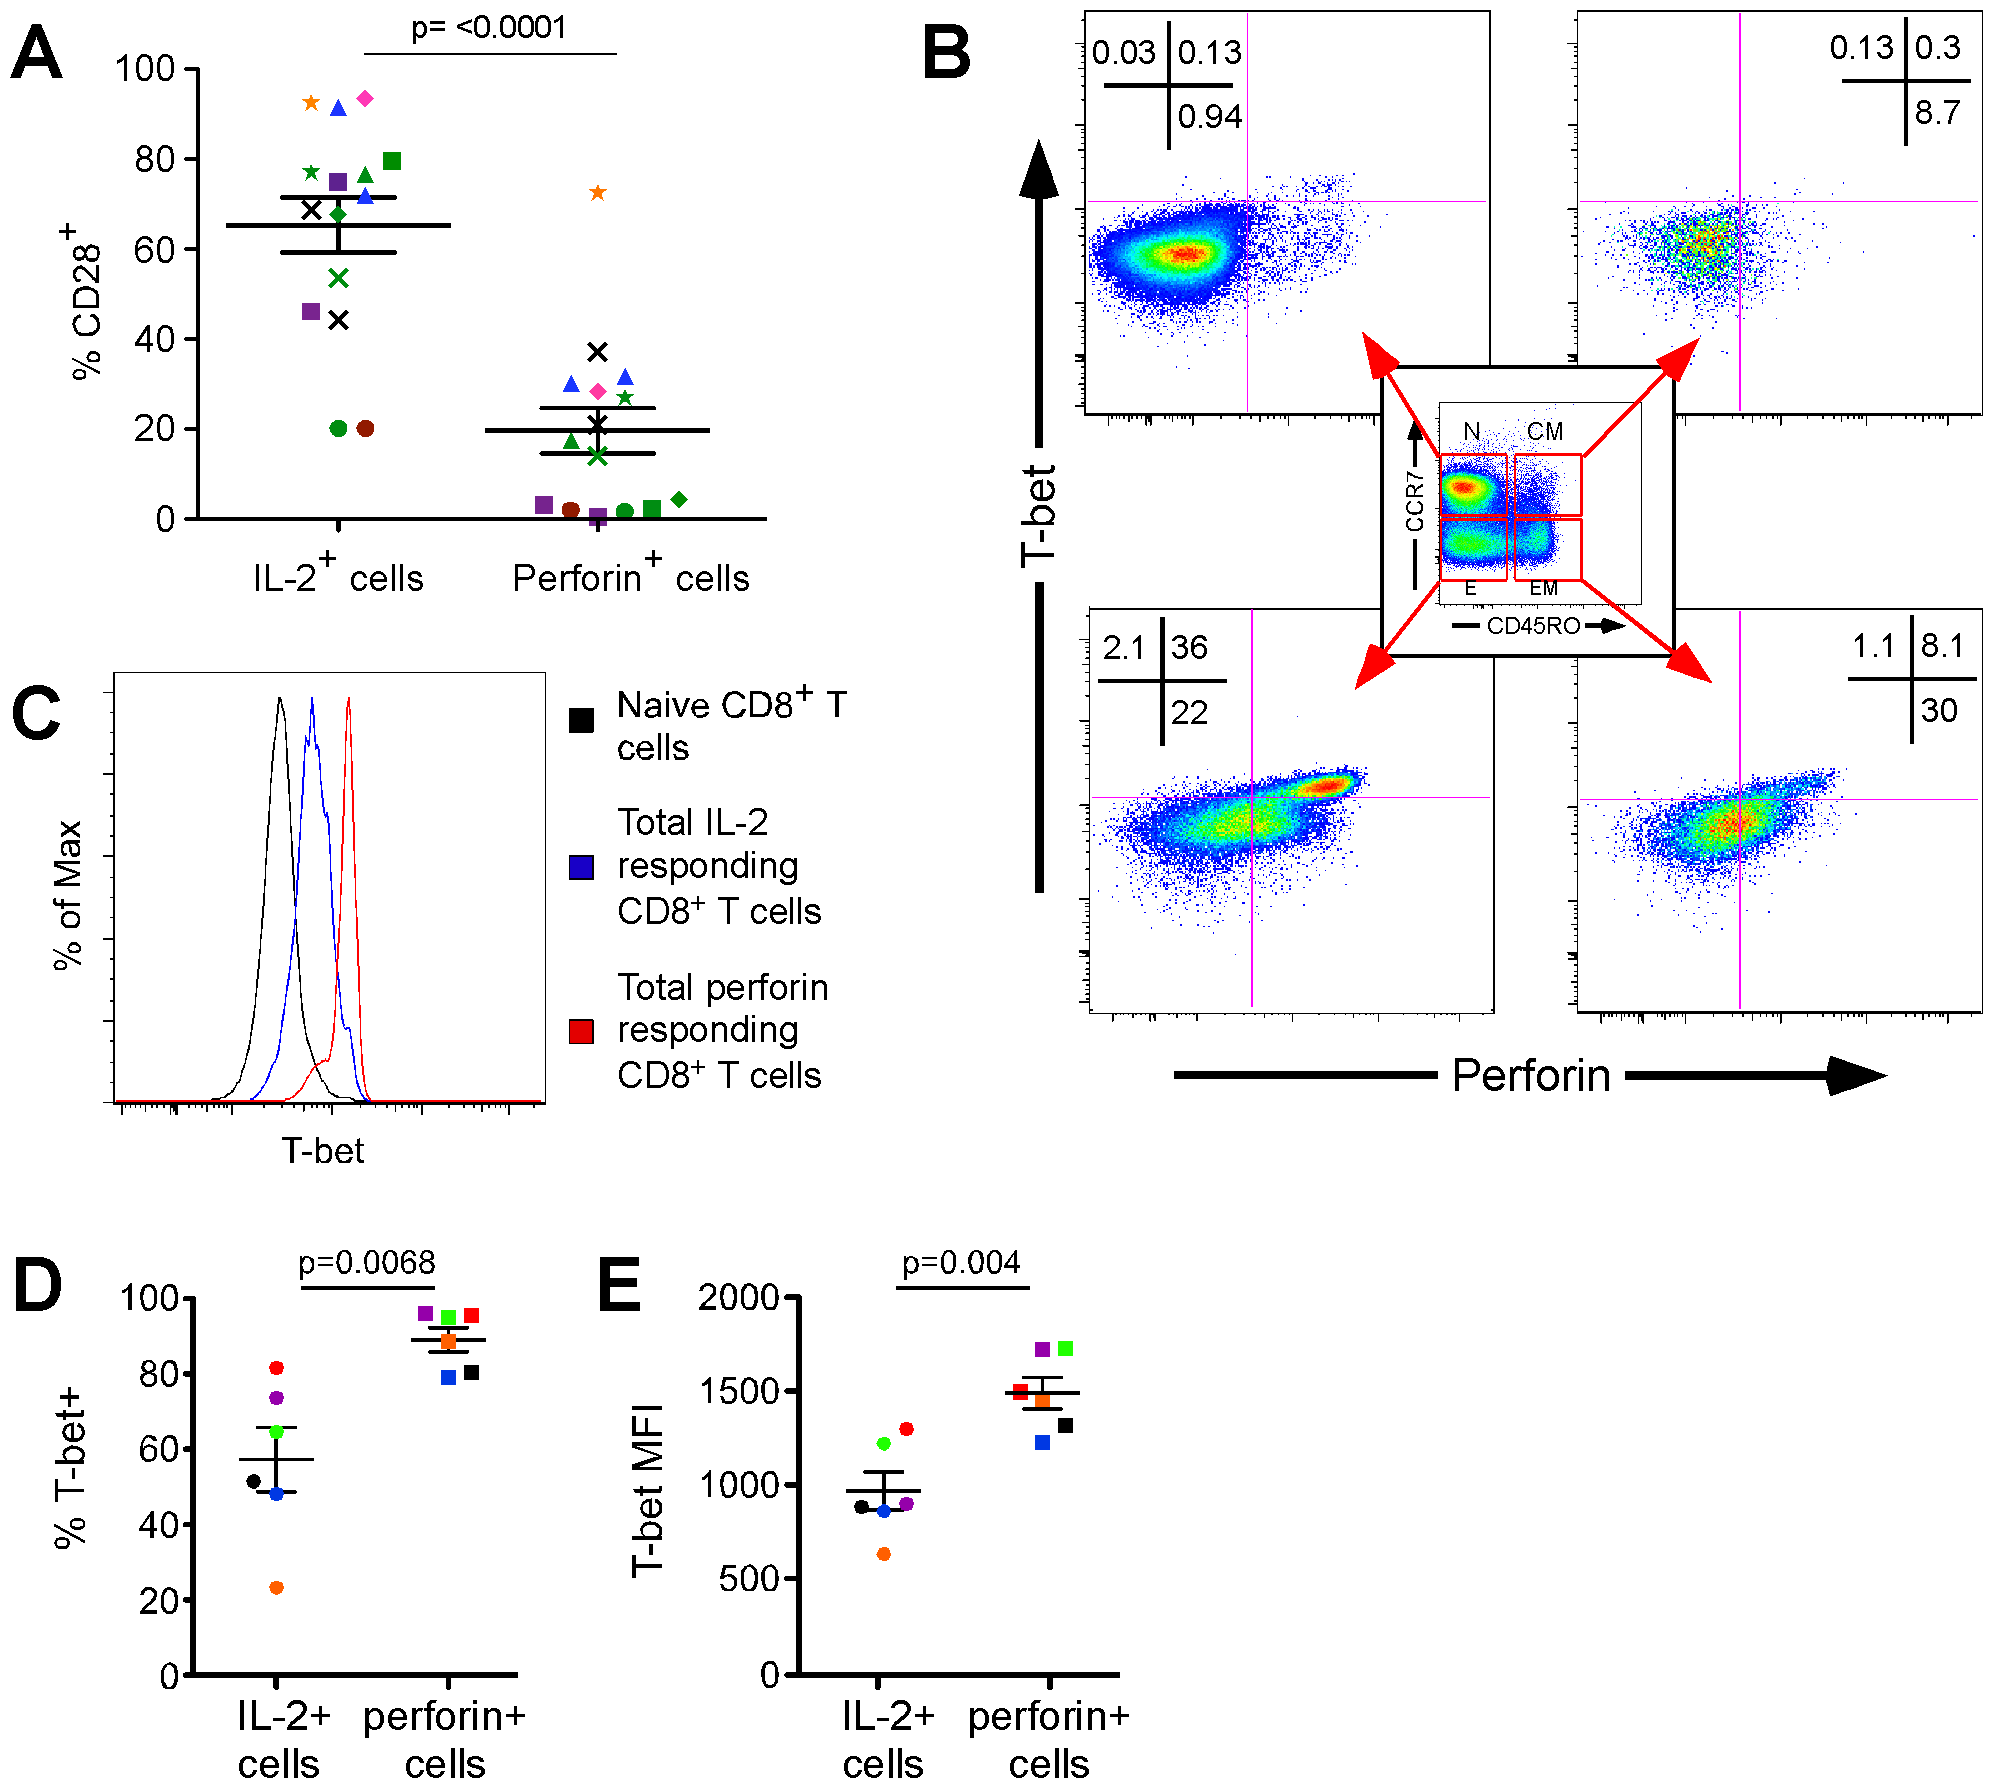 T-bet is preferentially expressed in CD8<sup>+</sup> T cells that rapidly upregulate perforin and promotes an effector phenotype.